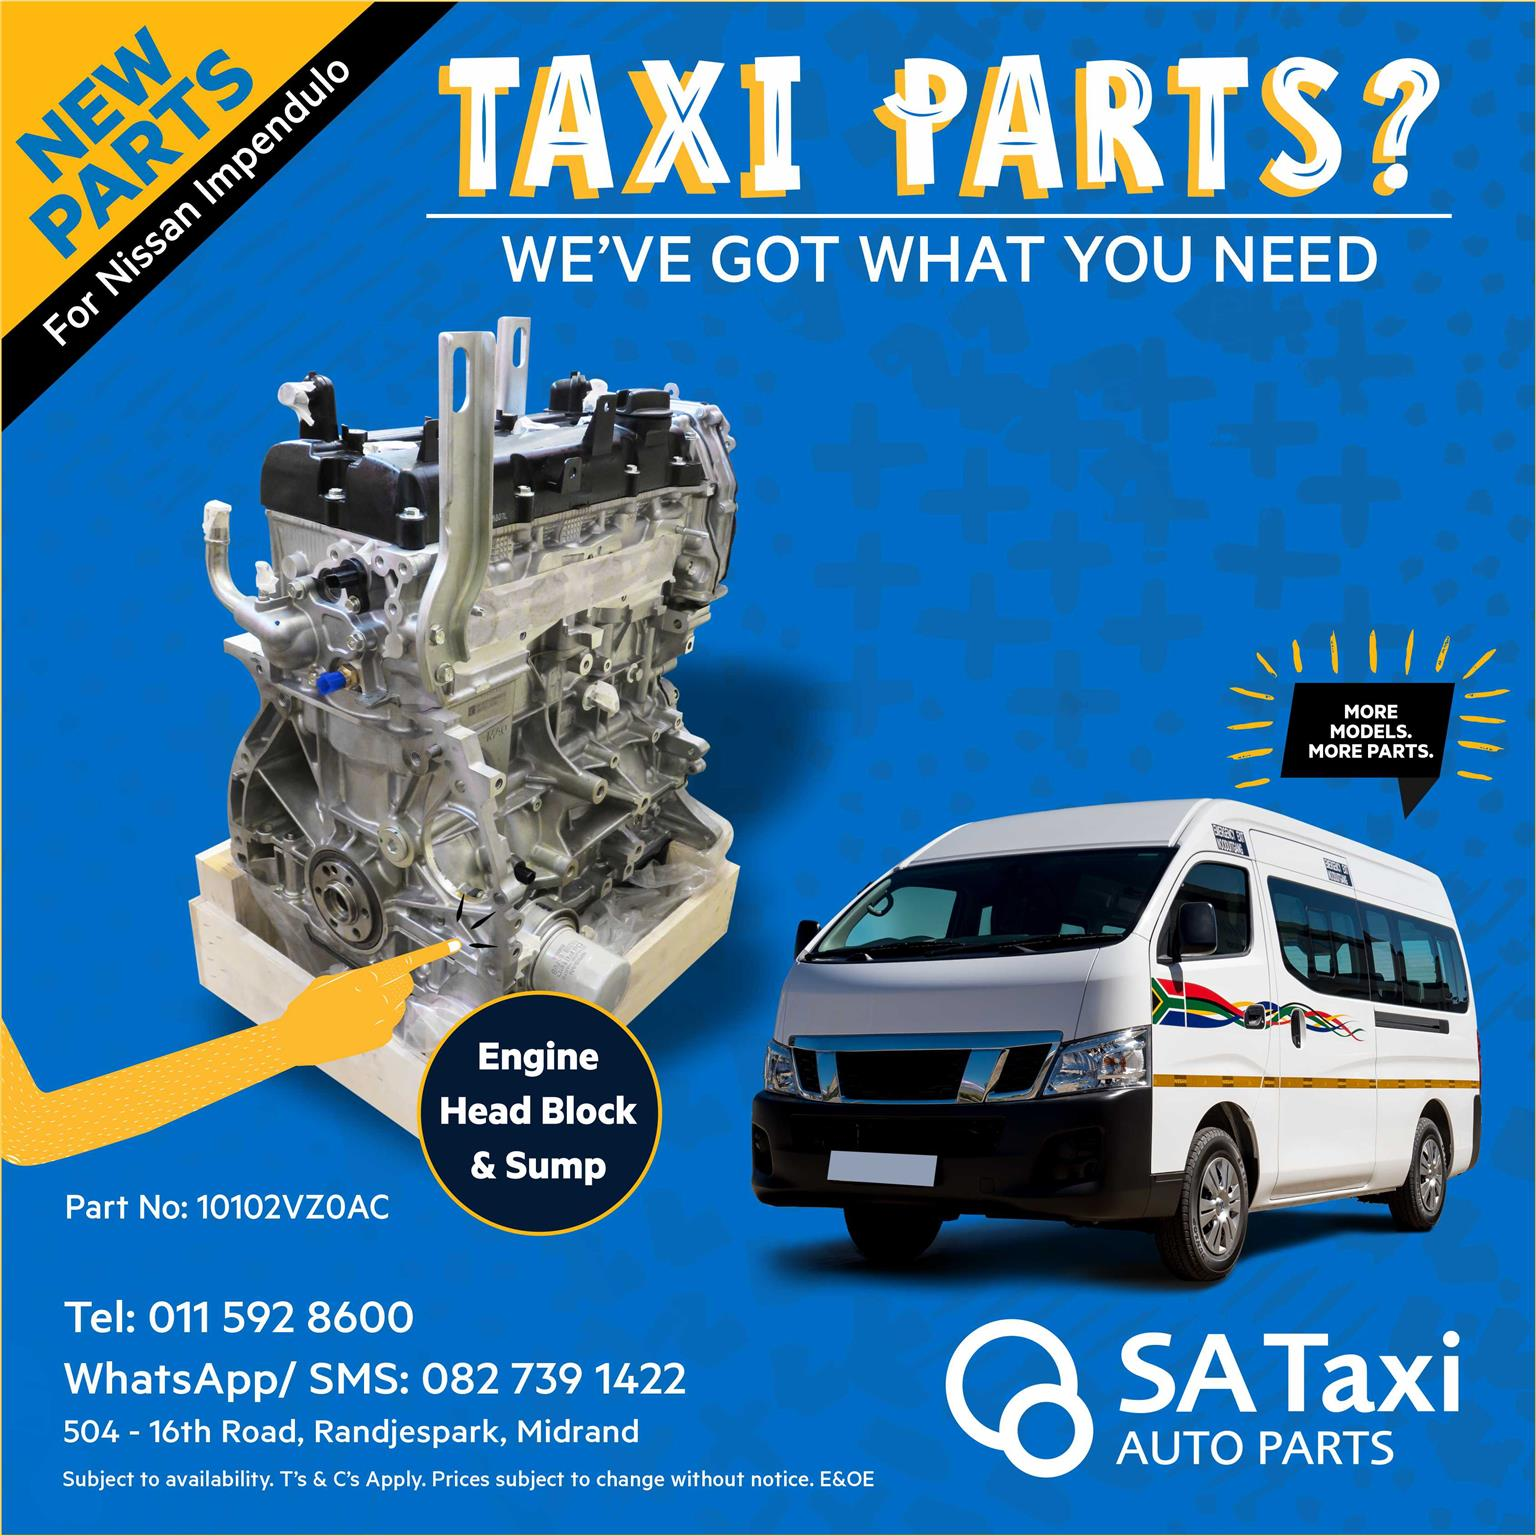 NEW Engine Head Block & Sump for Nissan NV350 Impendulo - SA Taxi Auto Parts quality spares